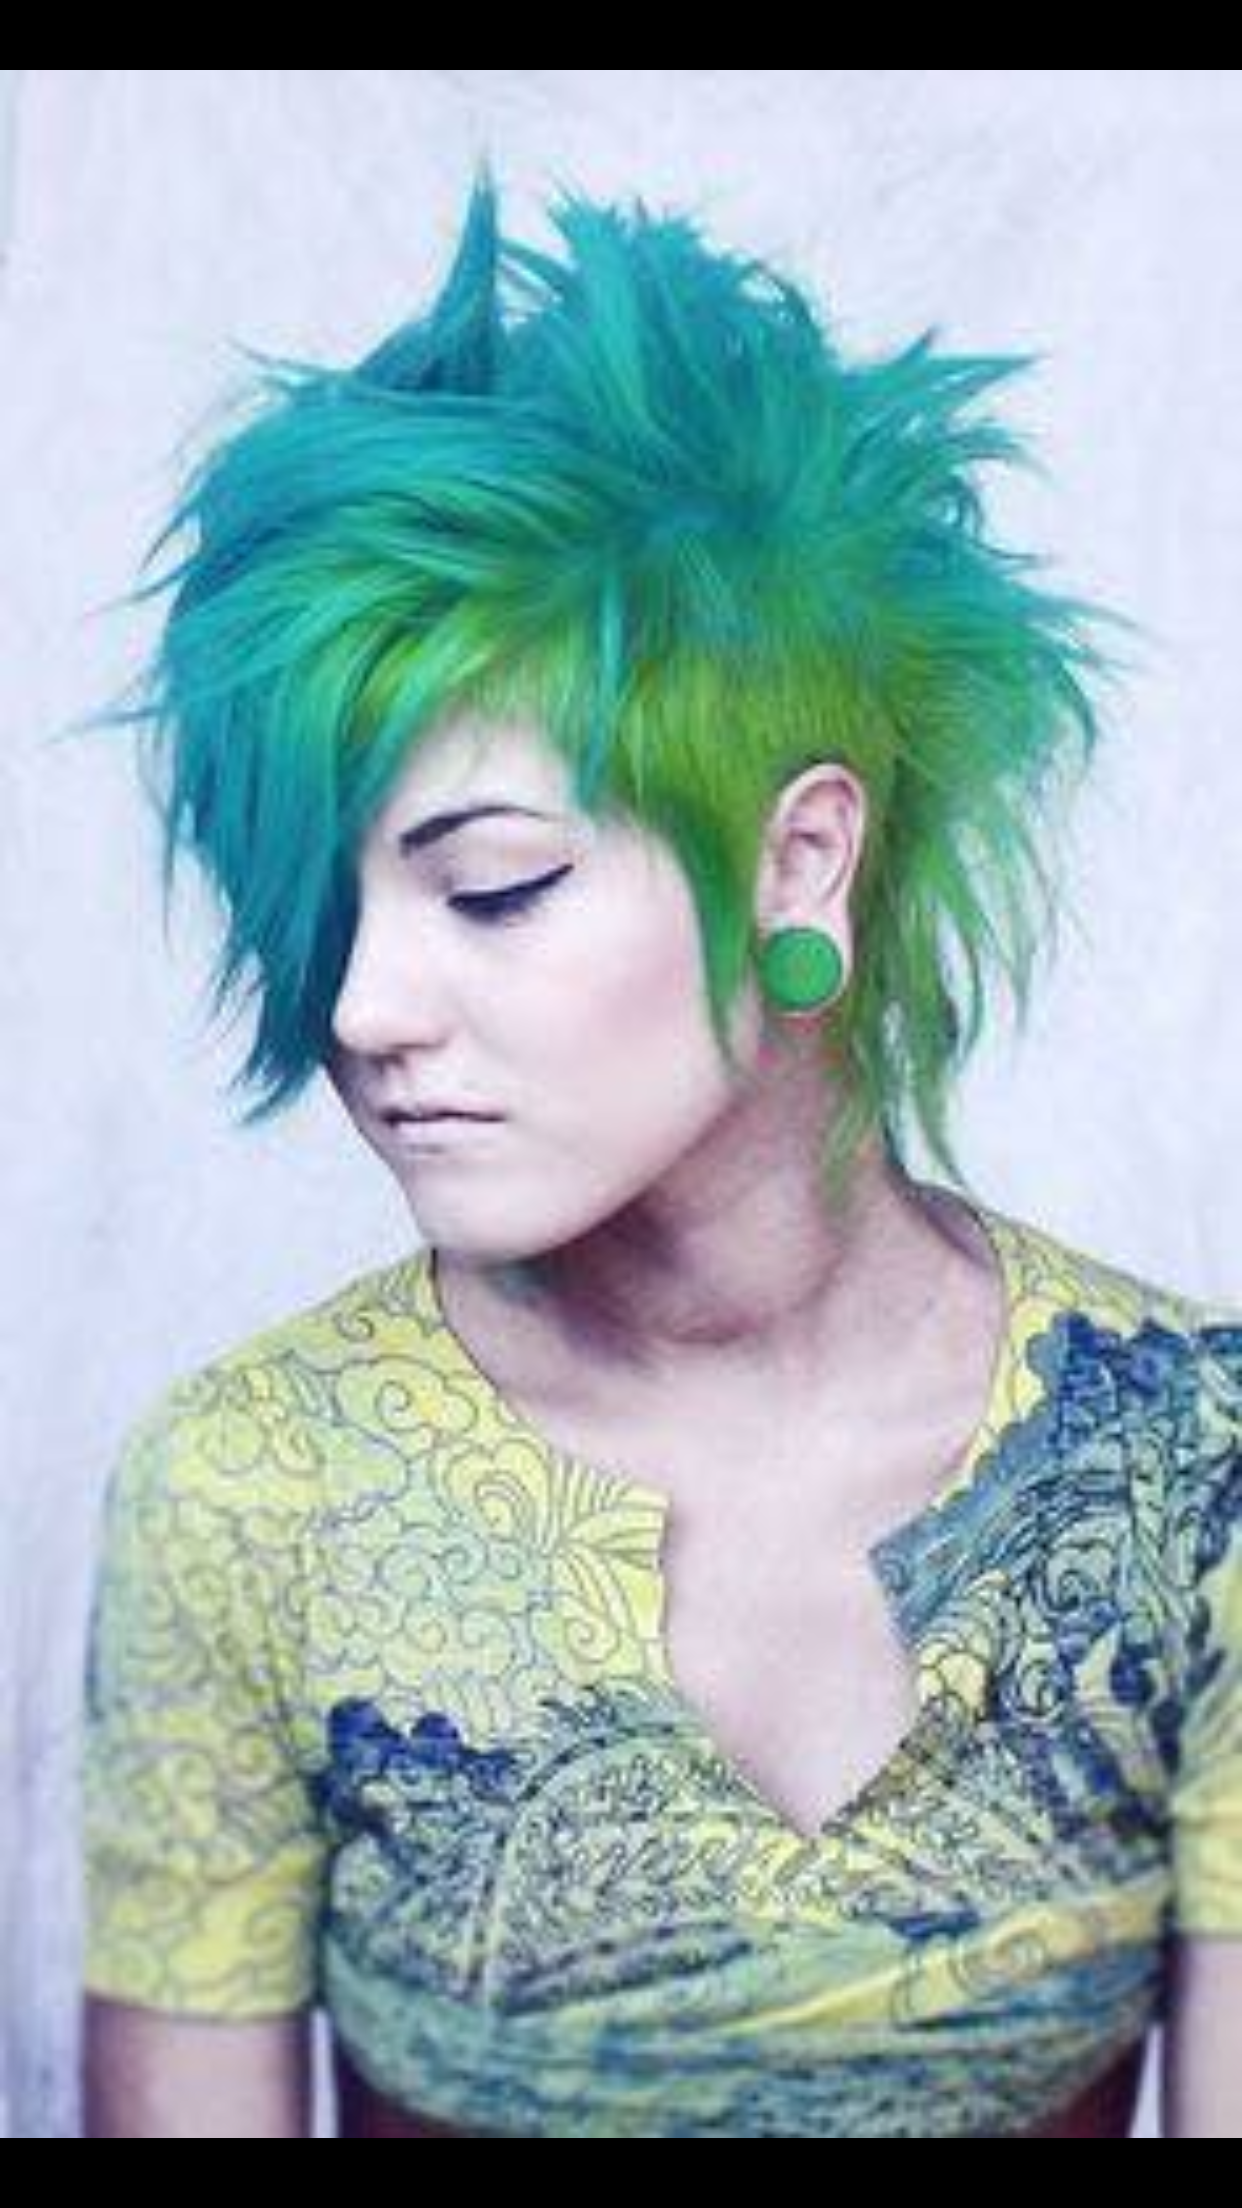 Pin by lisa Murphy on awesome hair Pinterest Awesome hair